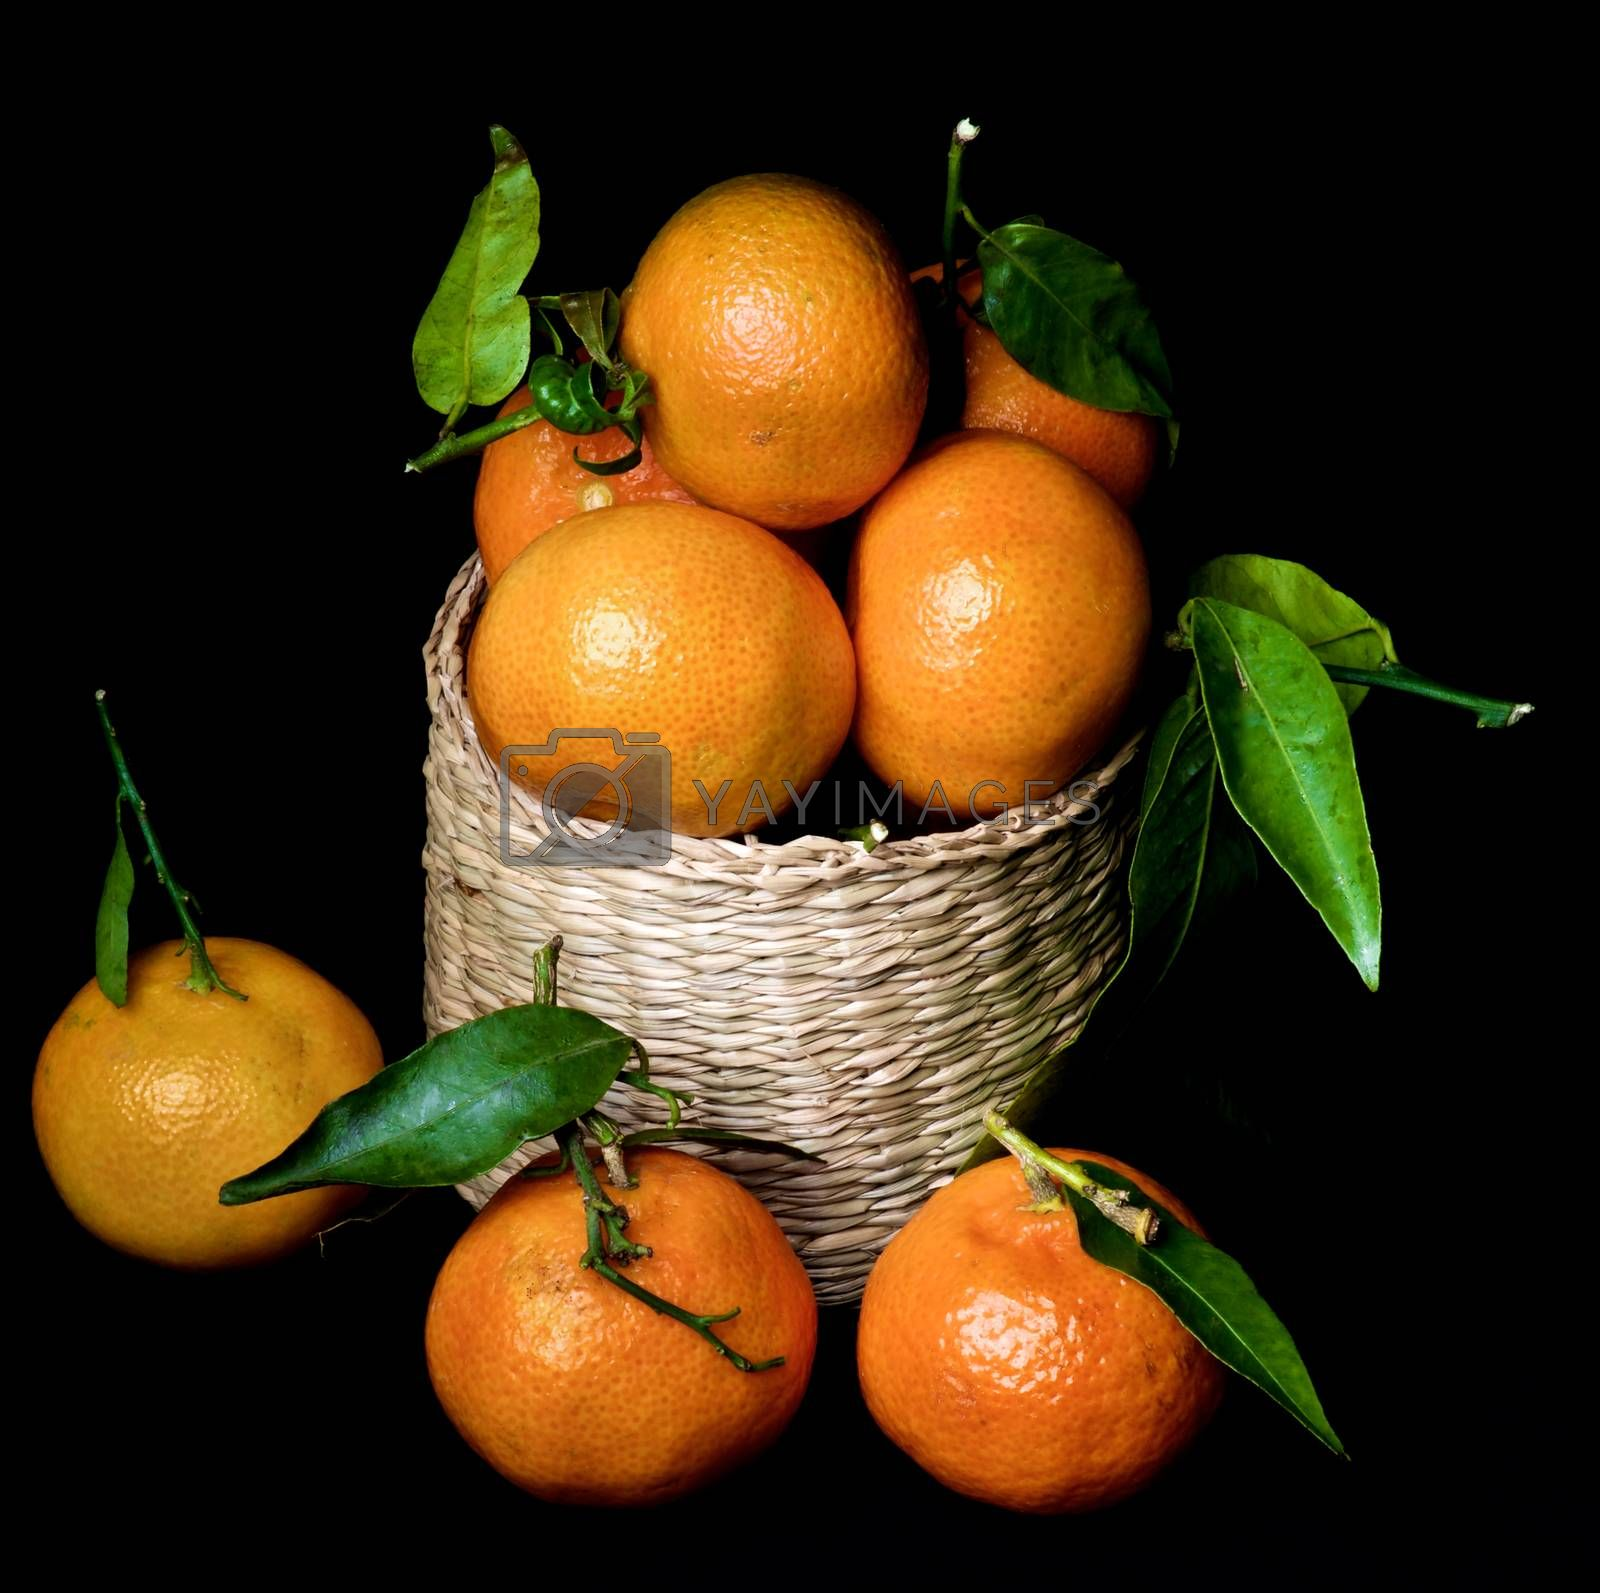 Ripe Tangerines with Leafs by zhekos